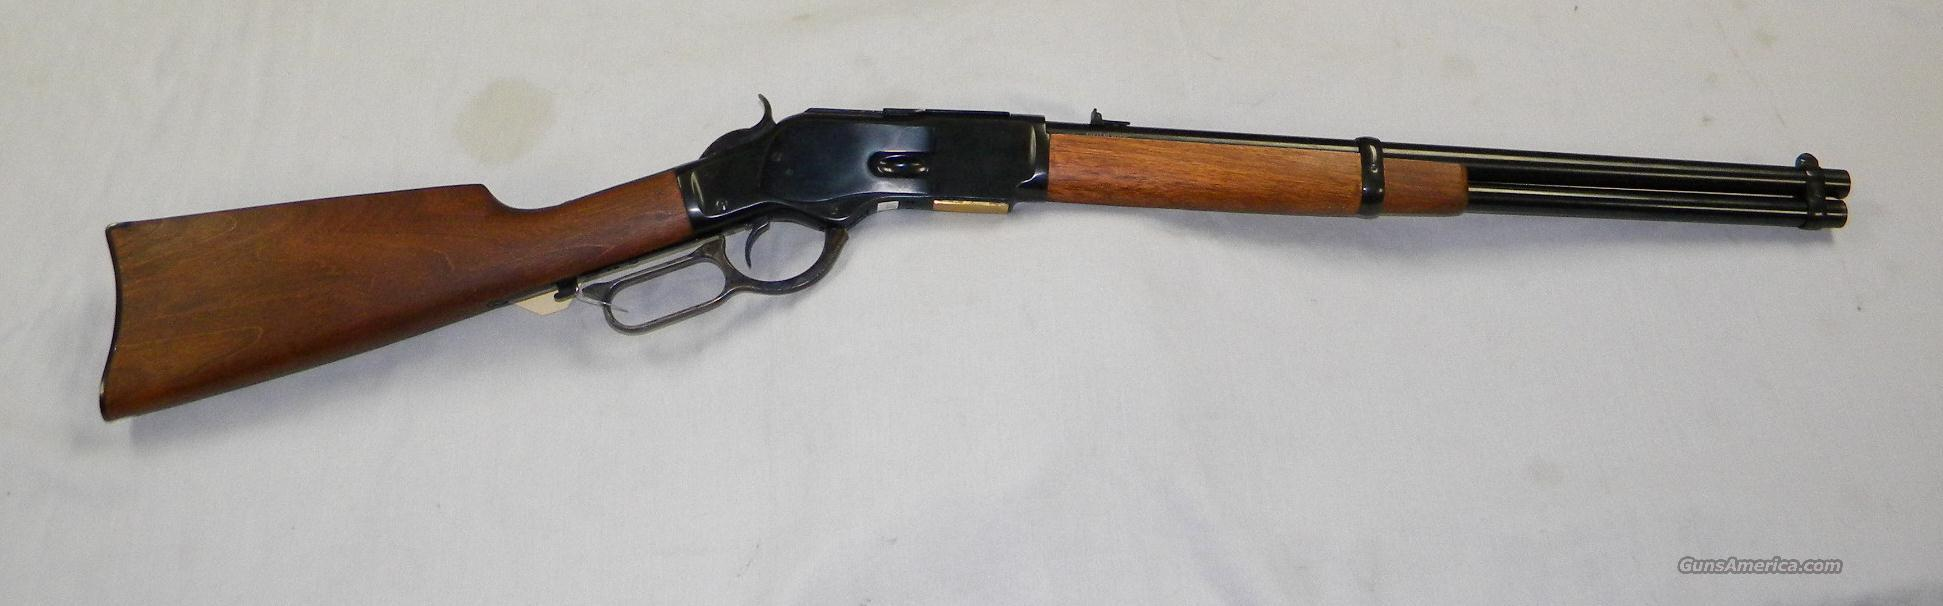 Chaparral 1873 Carbine .357MAG./.38SP.  Guns > Rifles > Winchester Rifles - Modern Lever > Other Lever > Post-64